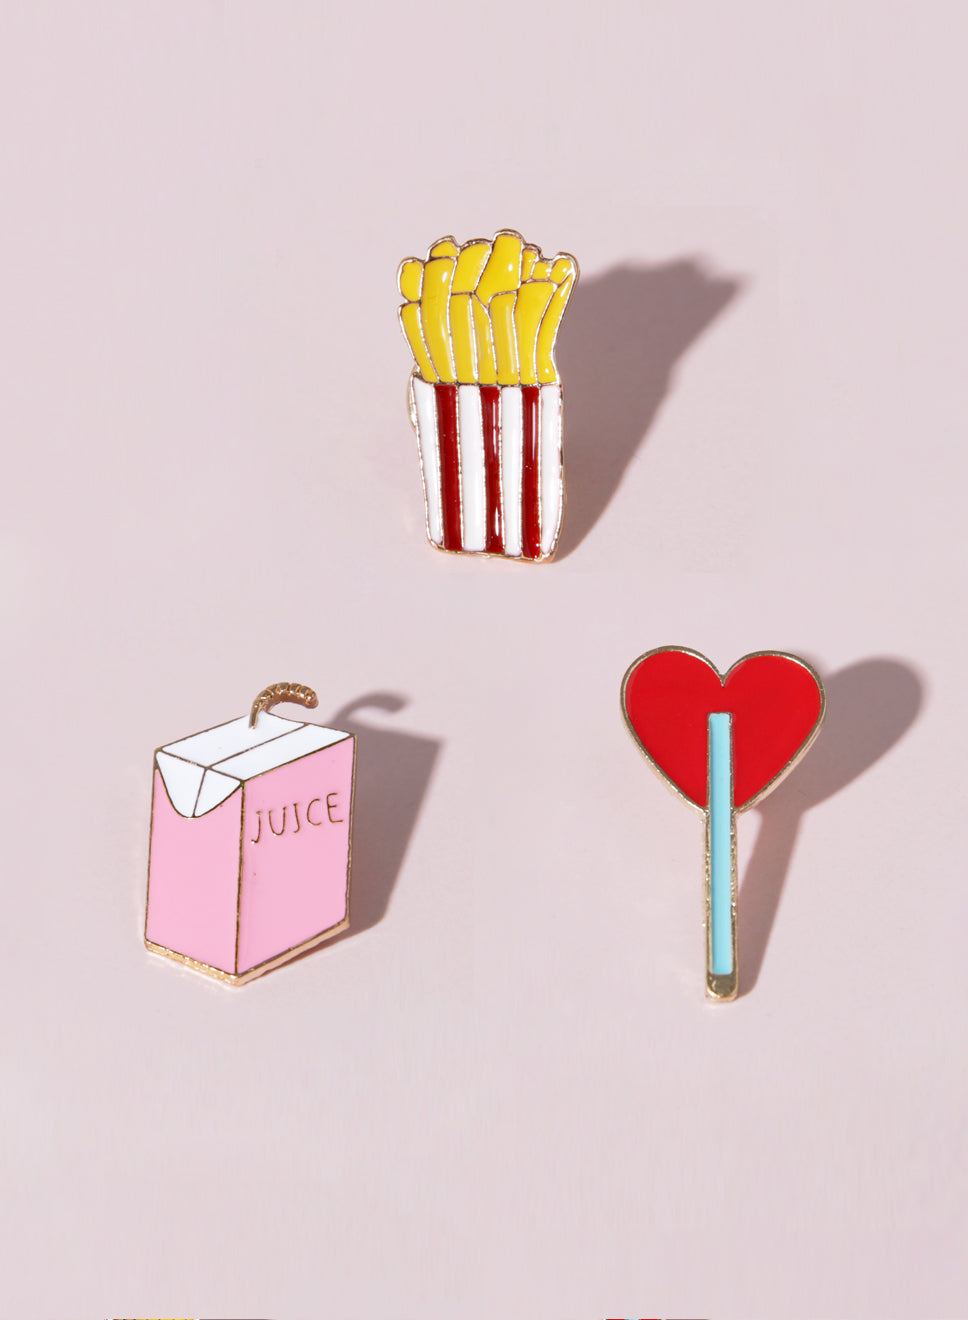 FOODIE Enamel Pin Set at $14.90 only sold at And Well Dressed Online Fashion Store Singapore